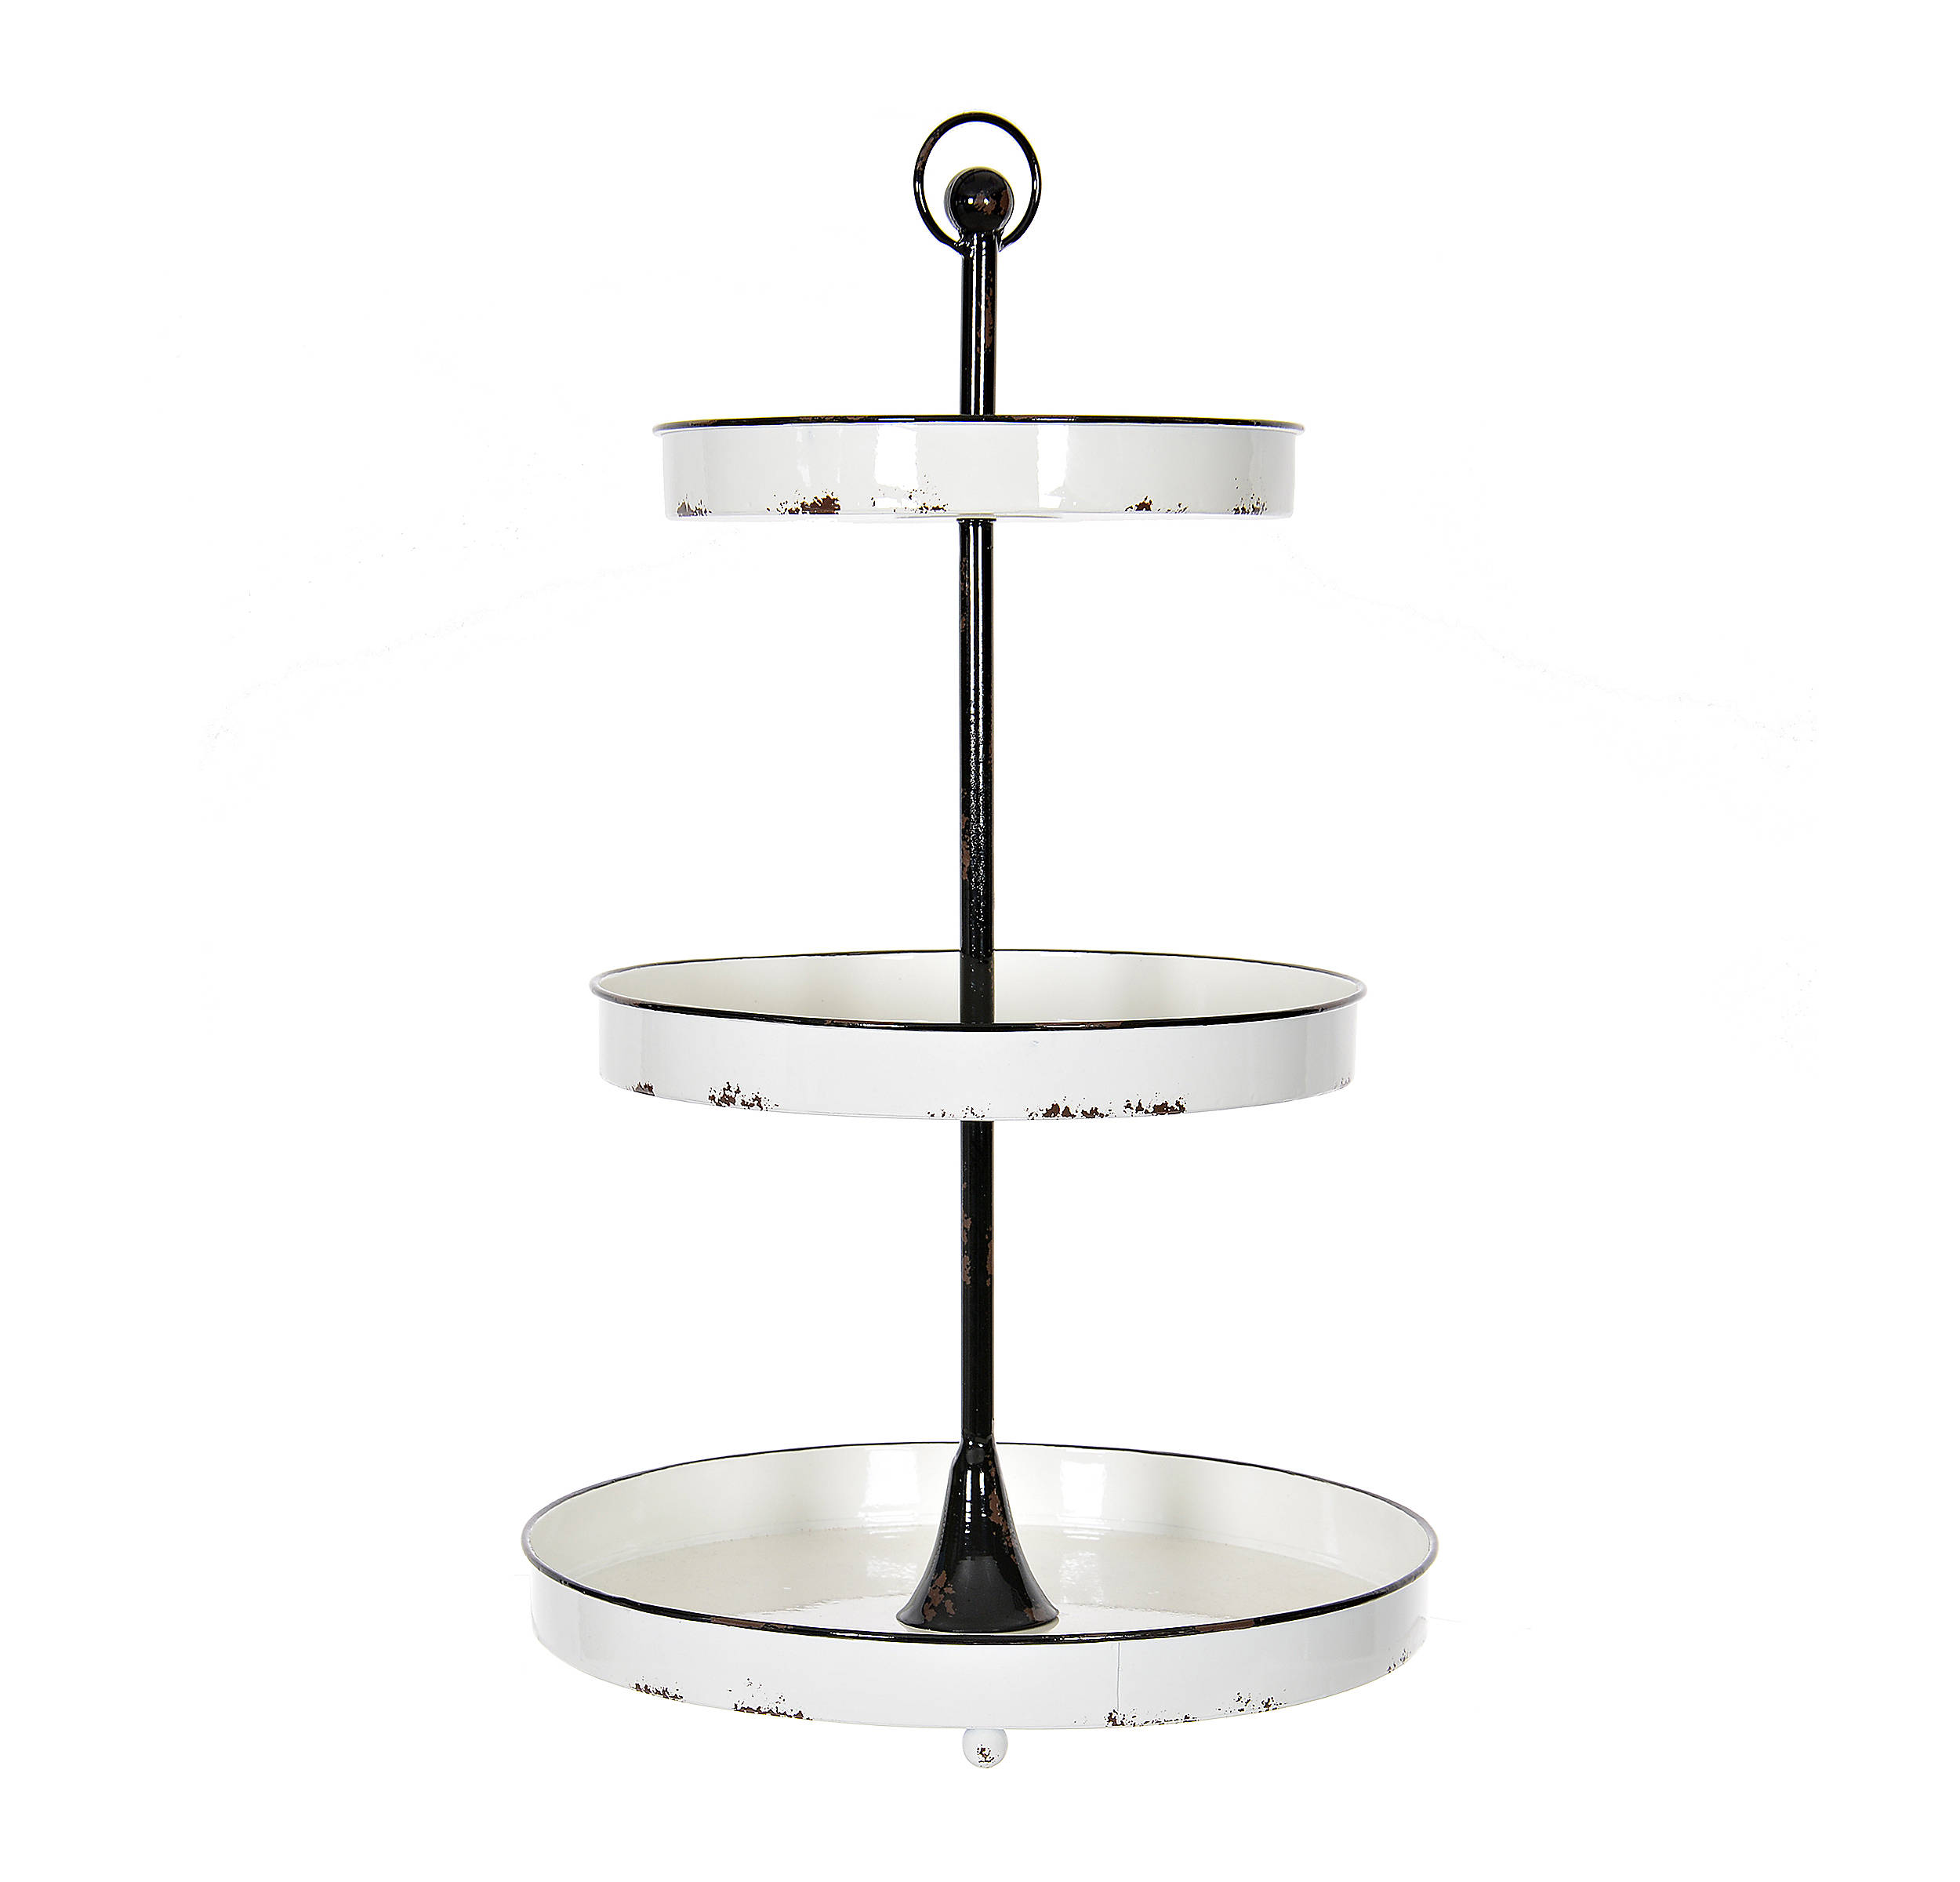 Shop Black and White Round Metal 3-Tier Tray from Kirkland's on Openhaus